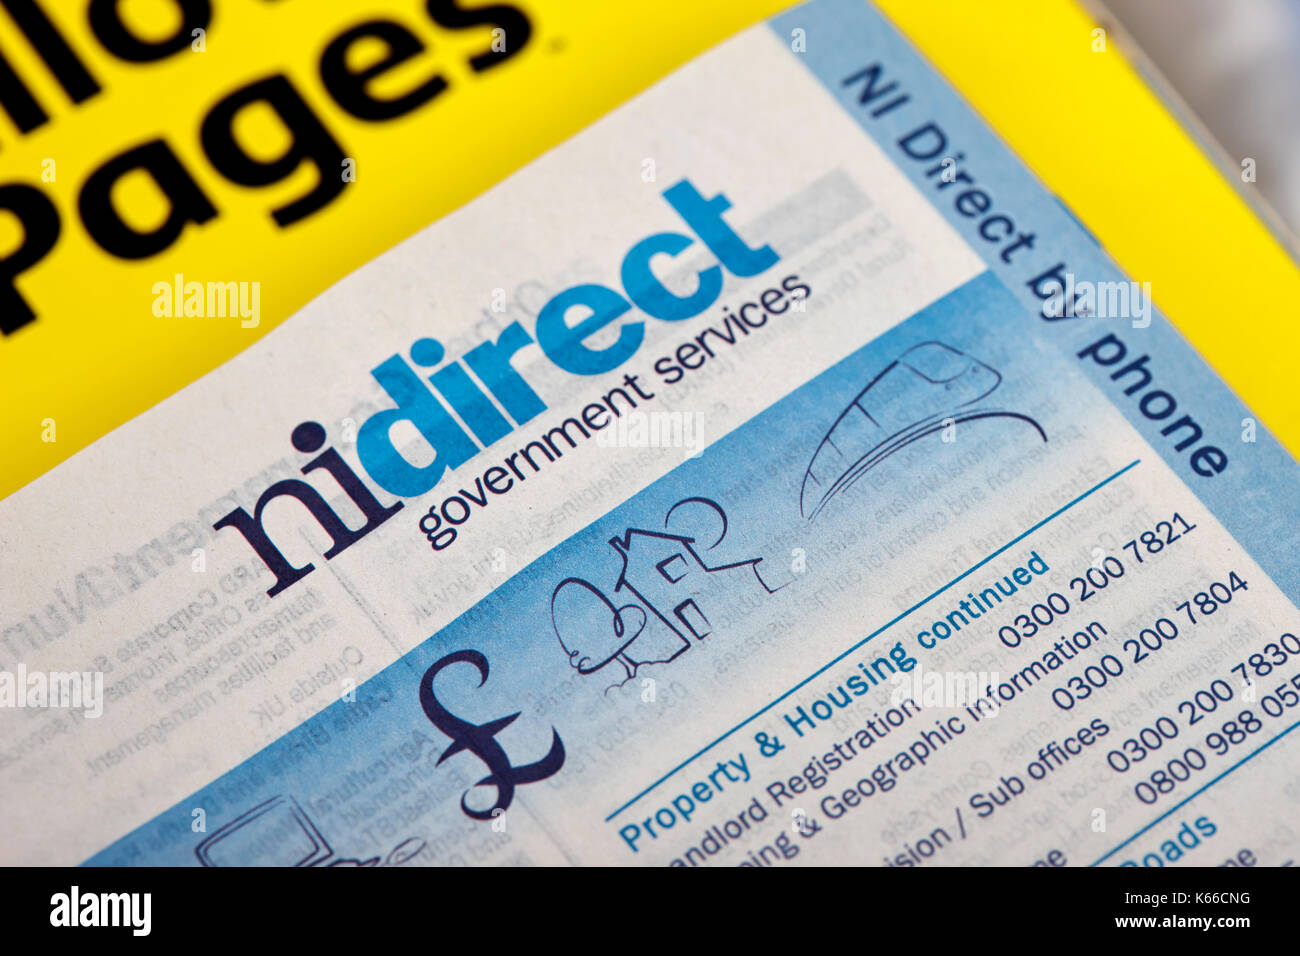 nidirect local government services numbers in yellow pages classified telephone directory paper edition uk - Stock Image